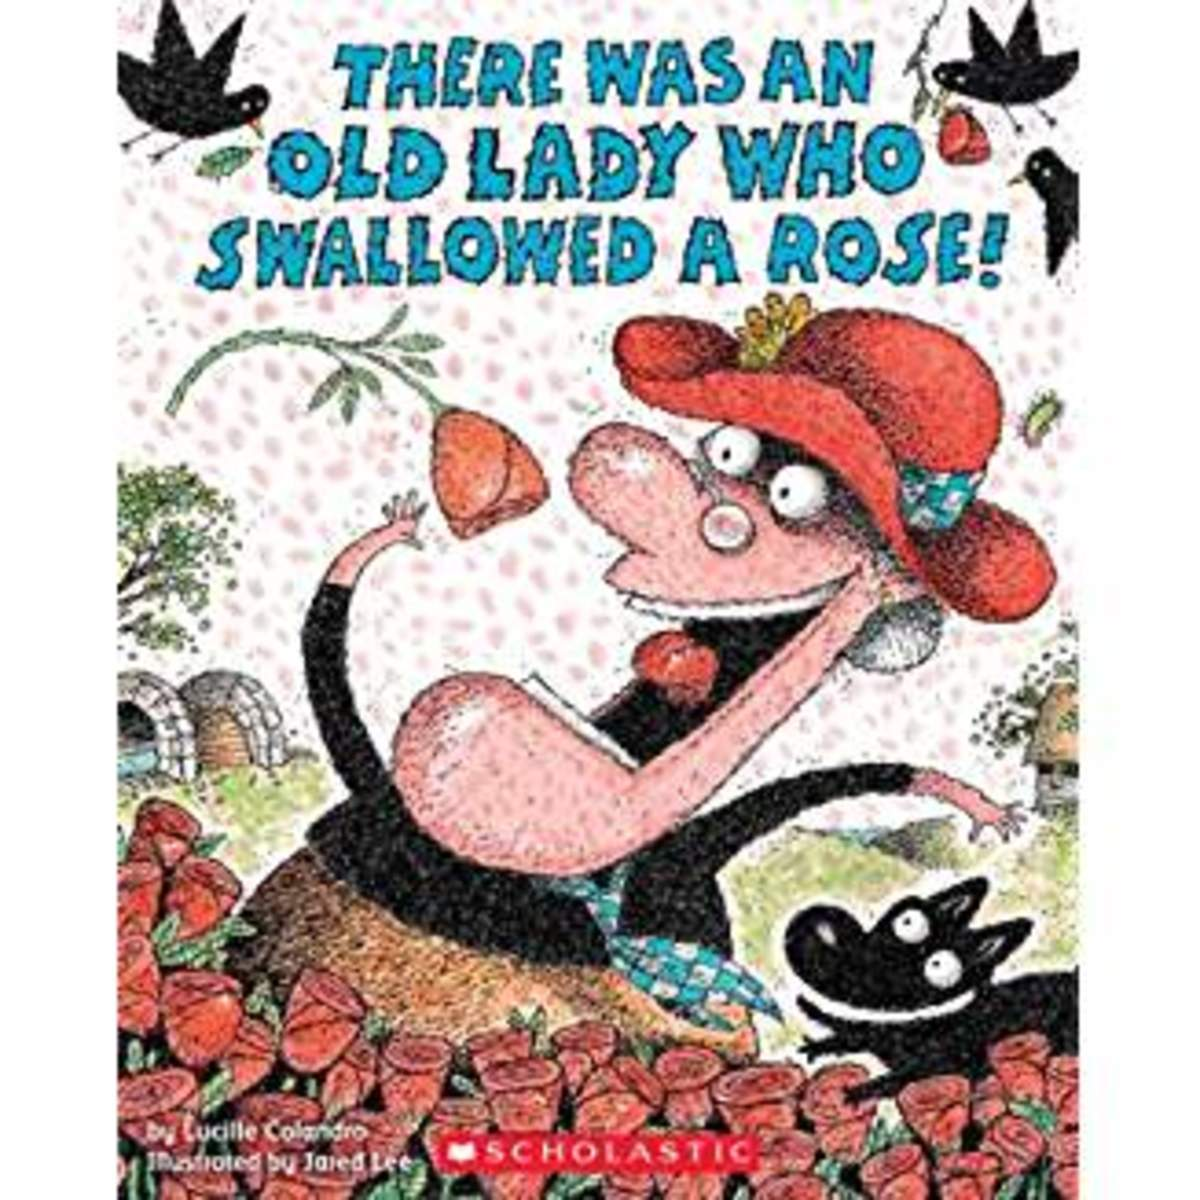 There Was an Old Lady Who Swallowed a Rose! by Lucille Colandro